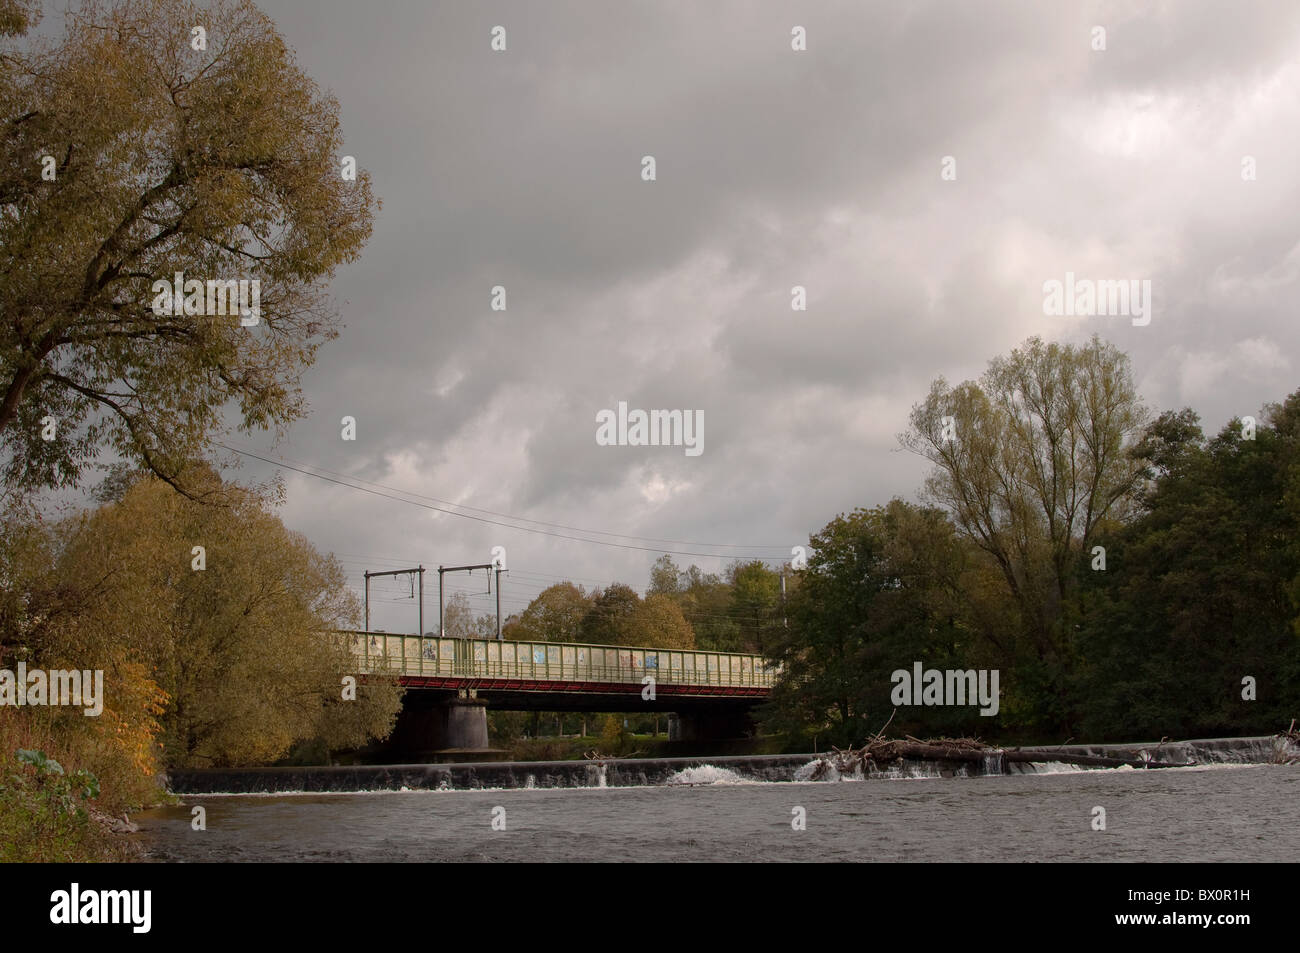 The river Ourthe under a railway bridge in the countryside under a very cloudy sky. By Pierre Jacques DESPA. - Stock Image